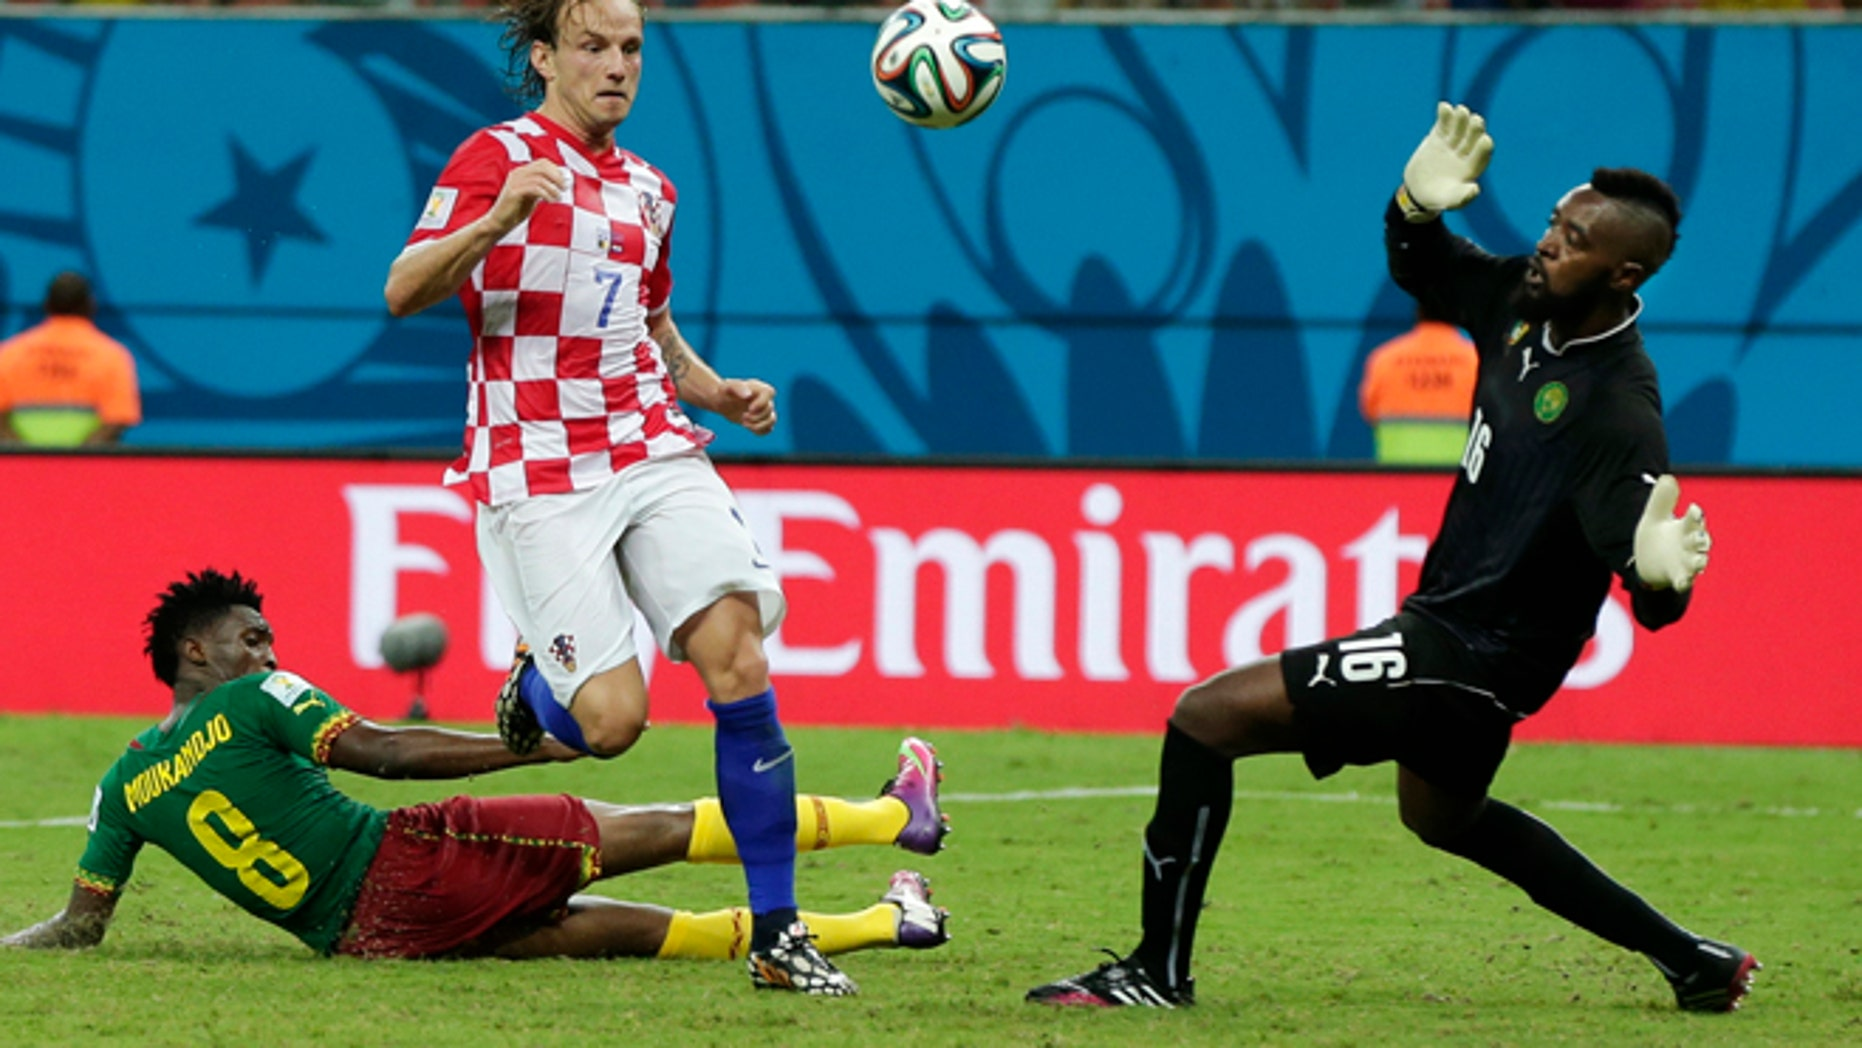 June 18, 2014: Croatia's Ivan Rakitic (7) kicks against Cameroon's goalkeeper Charles Itandje (16) during the group A World Cup soccer match between Cameroon and Croatia at the Arena da Amazonia in Manaus, Brazil.